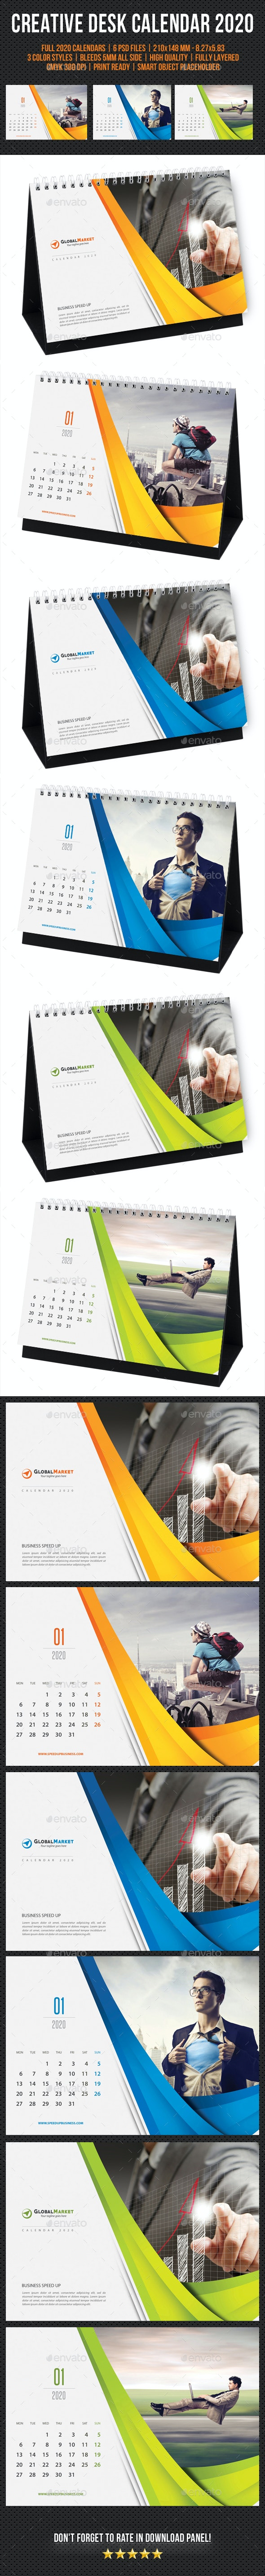 Creative Desk Calendar 2020 V11 - Calendars Stationery